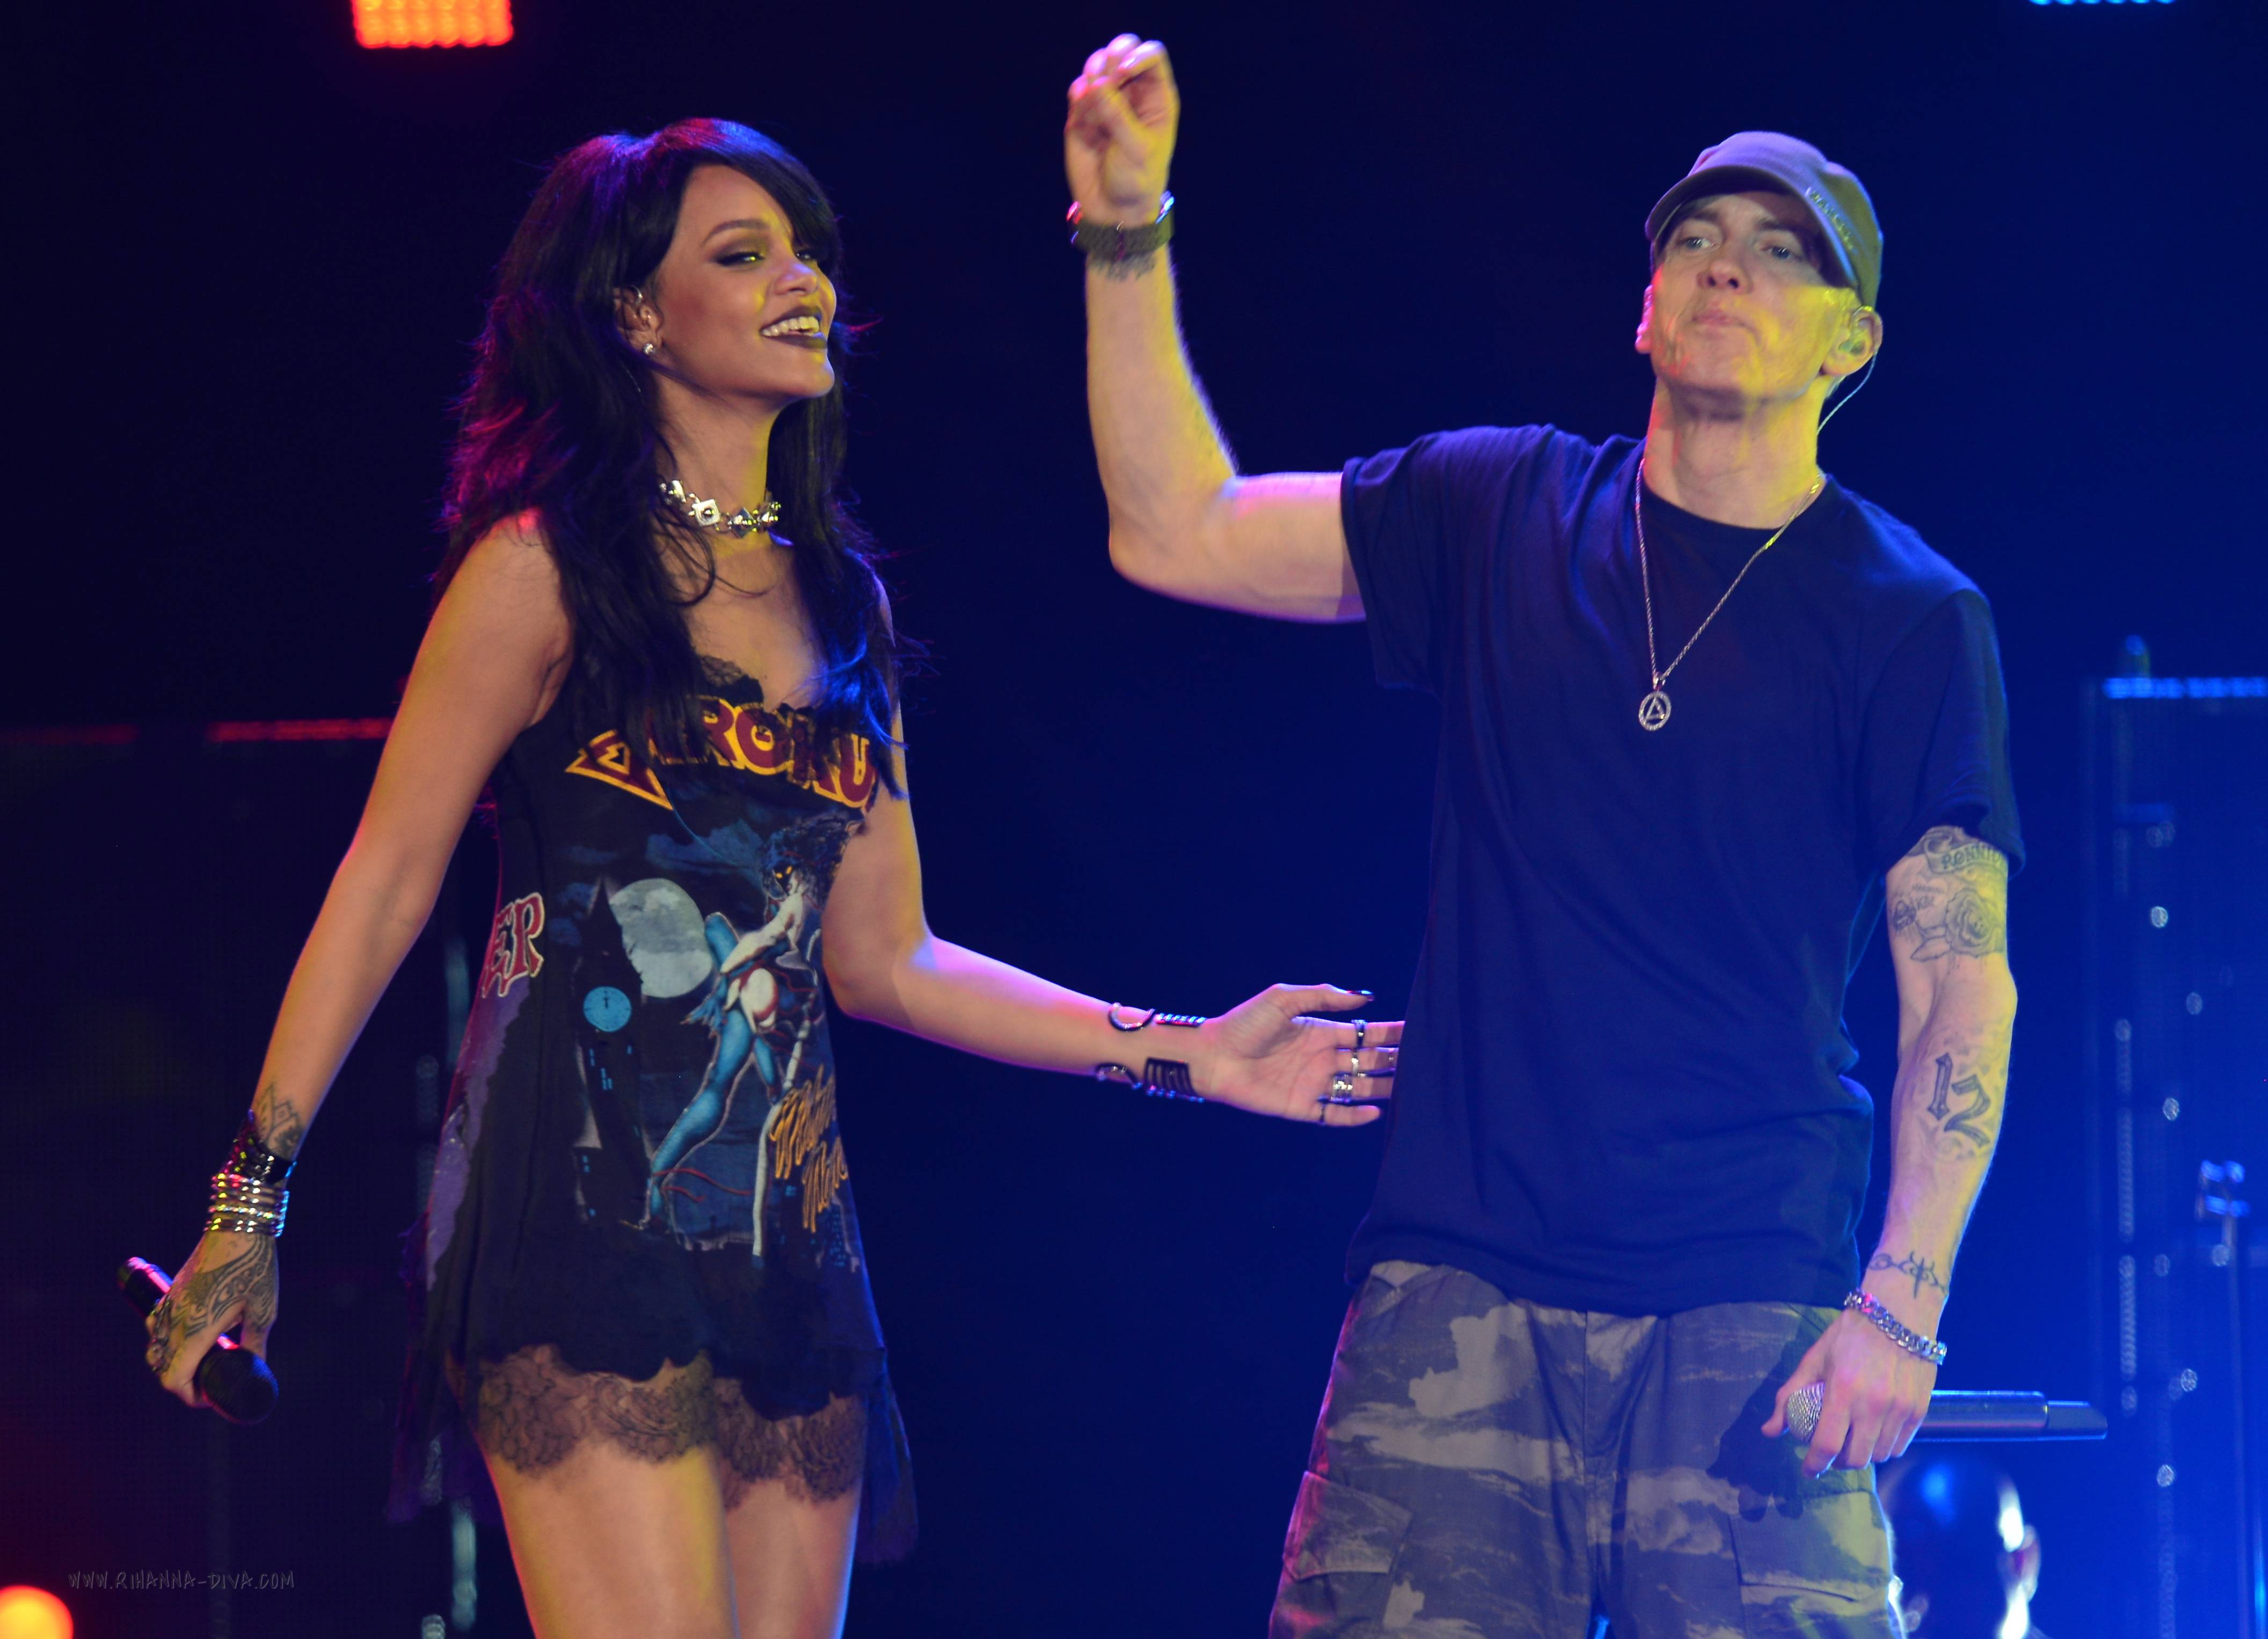 Eminem and Rihanna at The Monster Tour Rose Bowl August 7, 2014